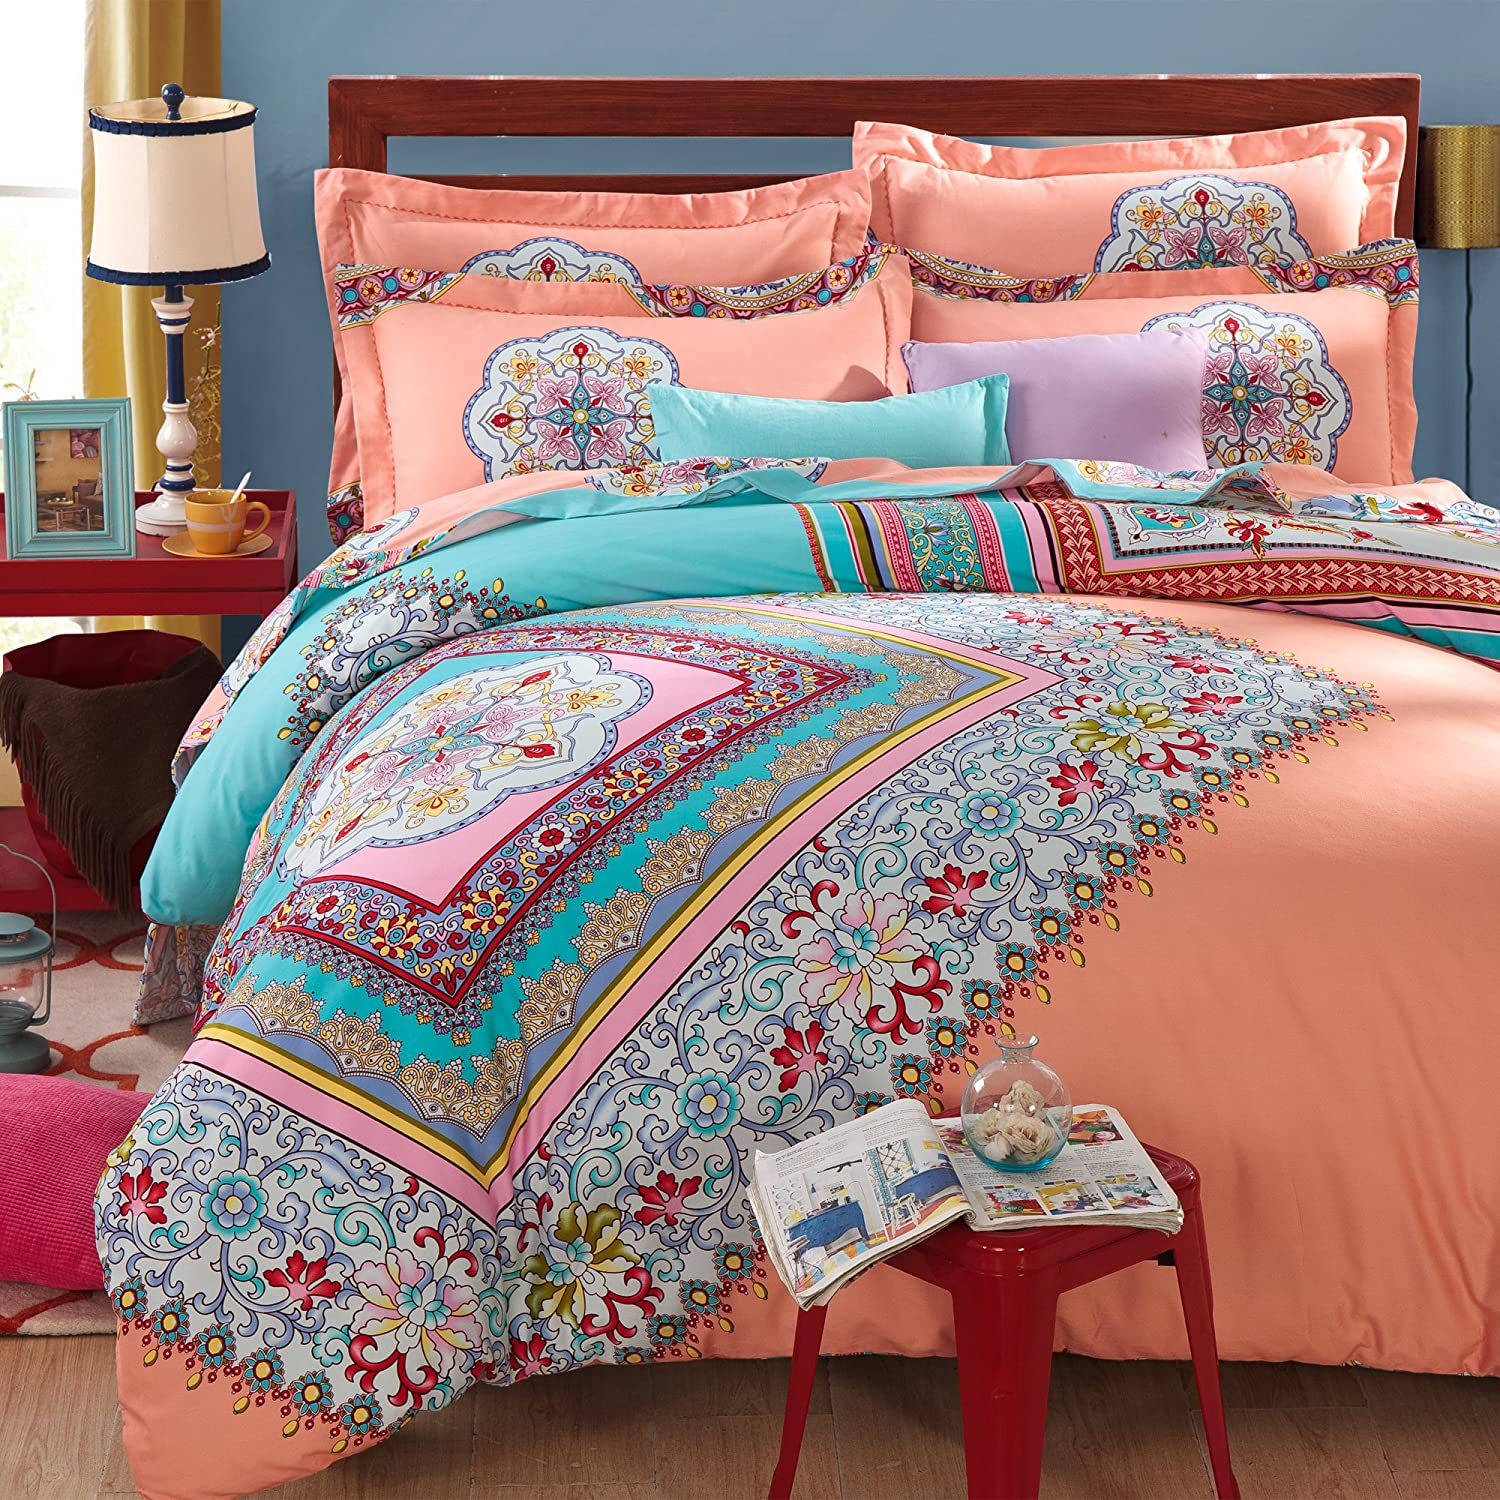 FADFAY 4-Piece Bohemian Bedding Boho Bedding Set Full Queen Size